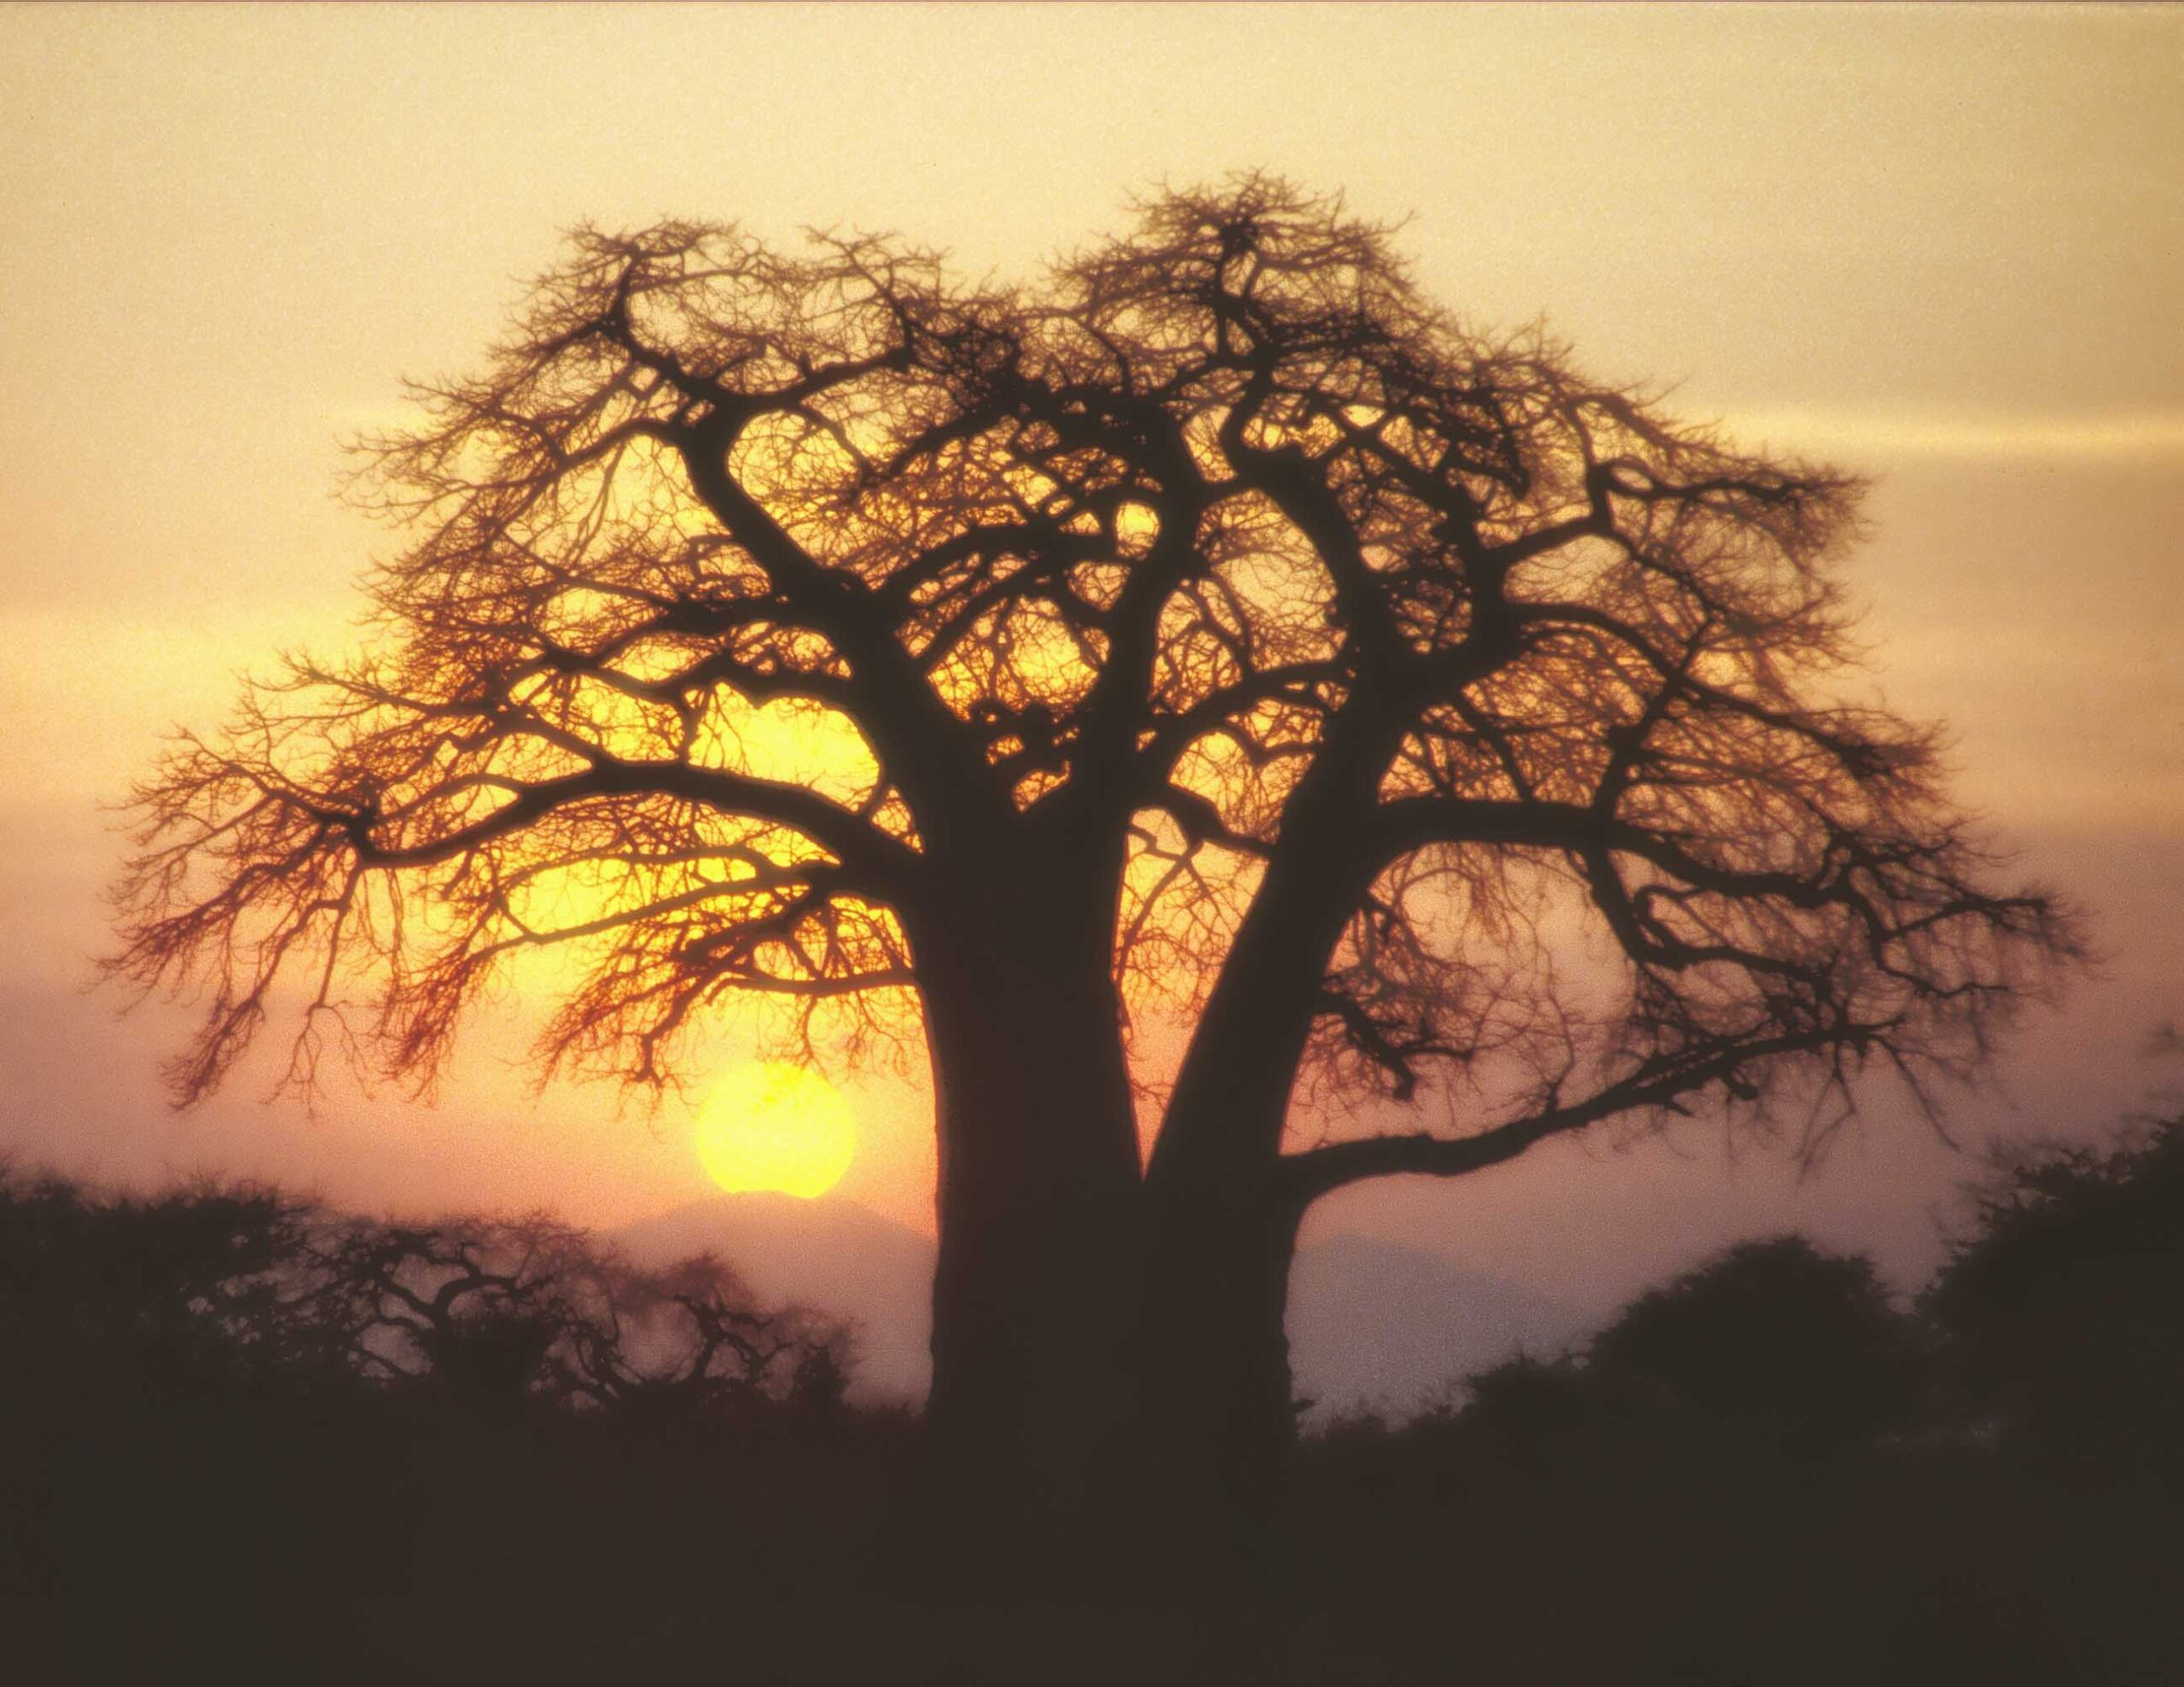 Large tree silhouetted against setting sun